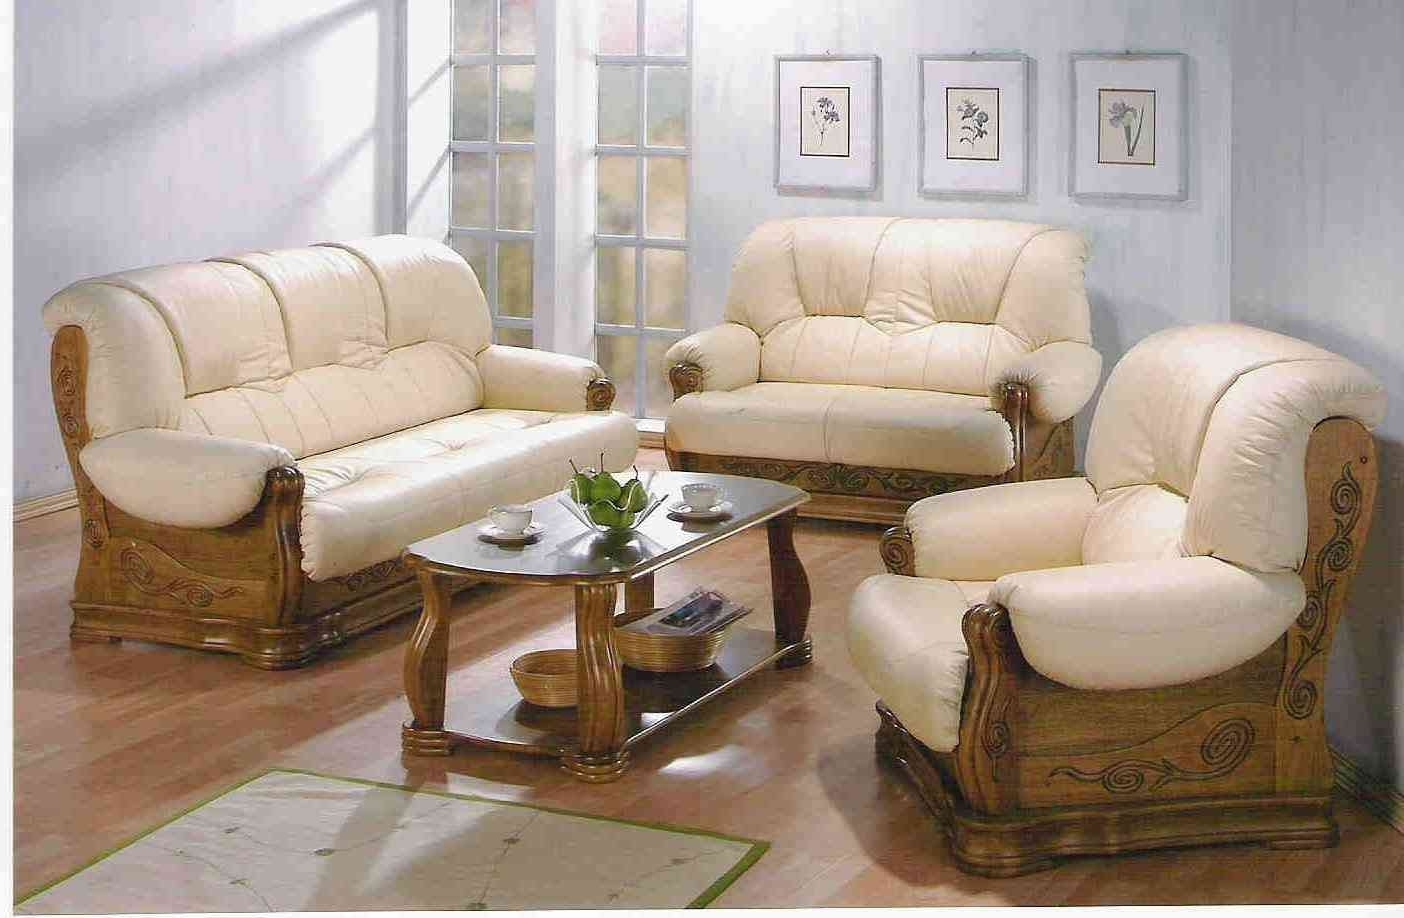 Trendy Traditional Sofas And Chairs Intended For Chairs : Traditional Wooden Sofa Set Designs Couch Traditional (View 13 of 15)